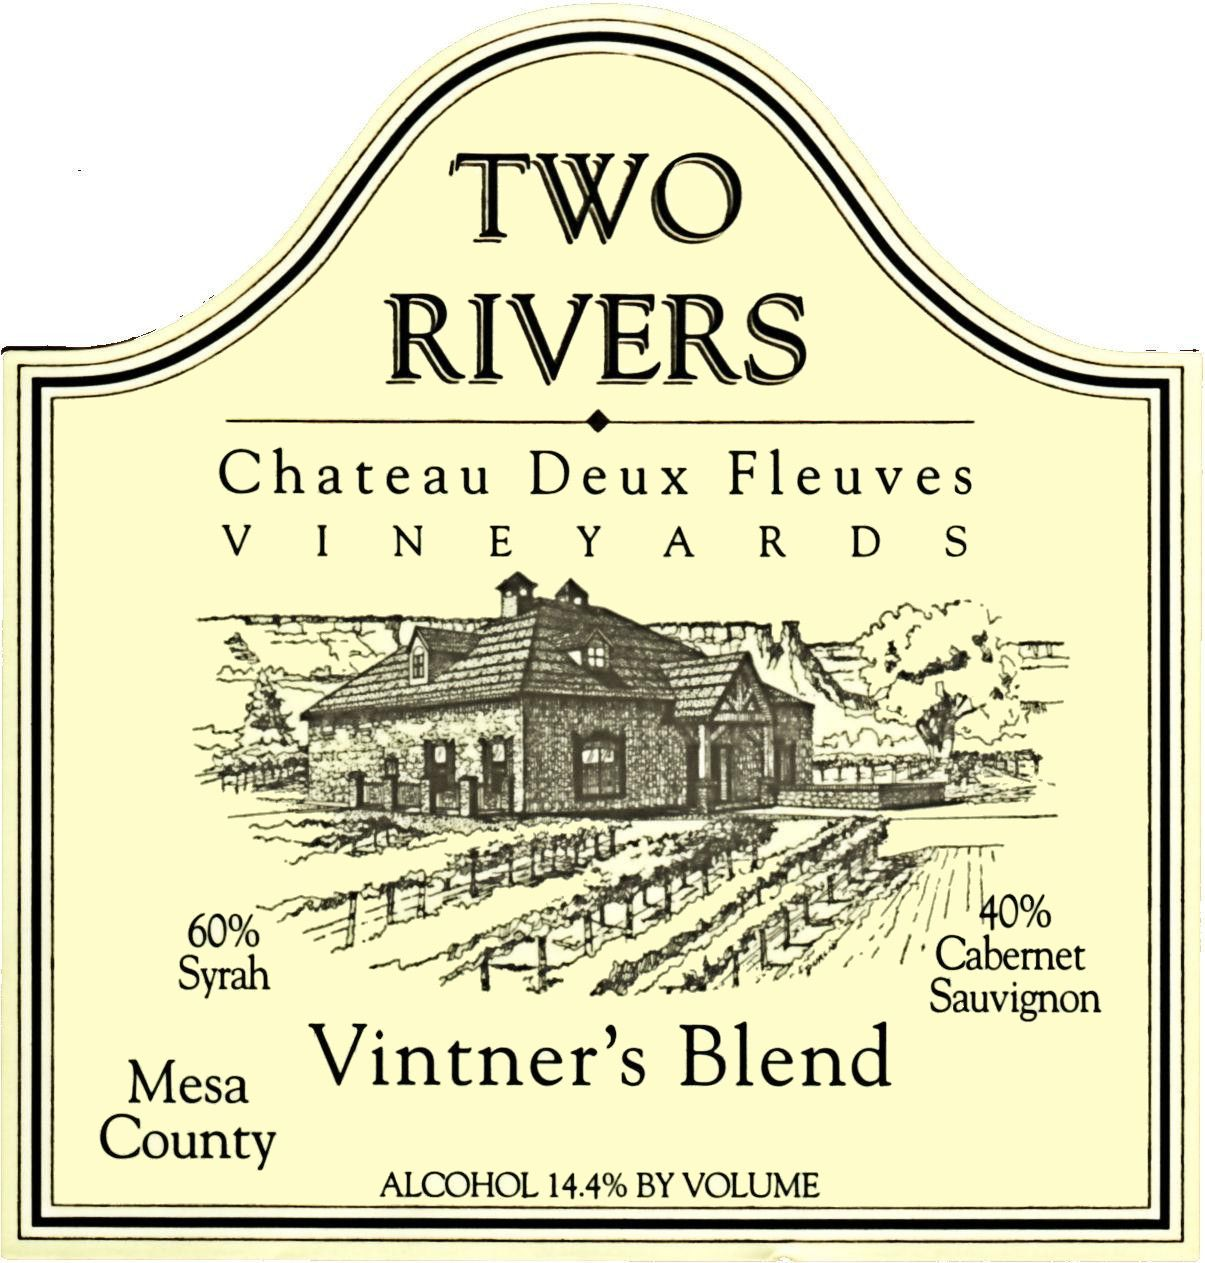 Two Rivers Winery and Chateau Mesa County Deux Fleuves Vineyards Vintner's Blend 2013 Front Label